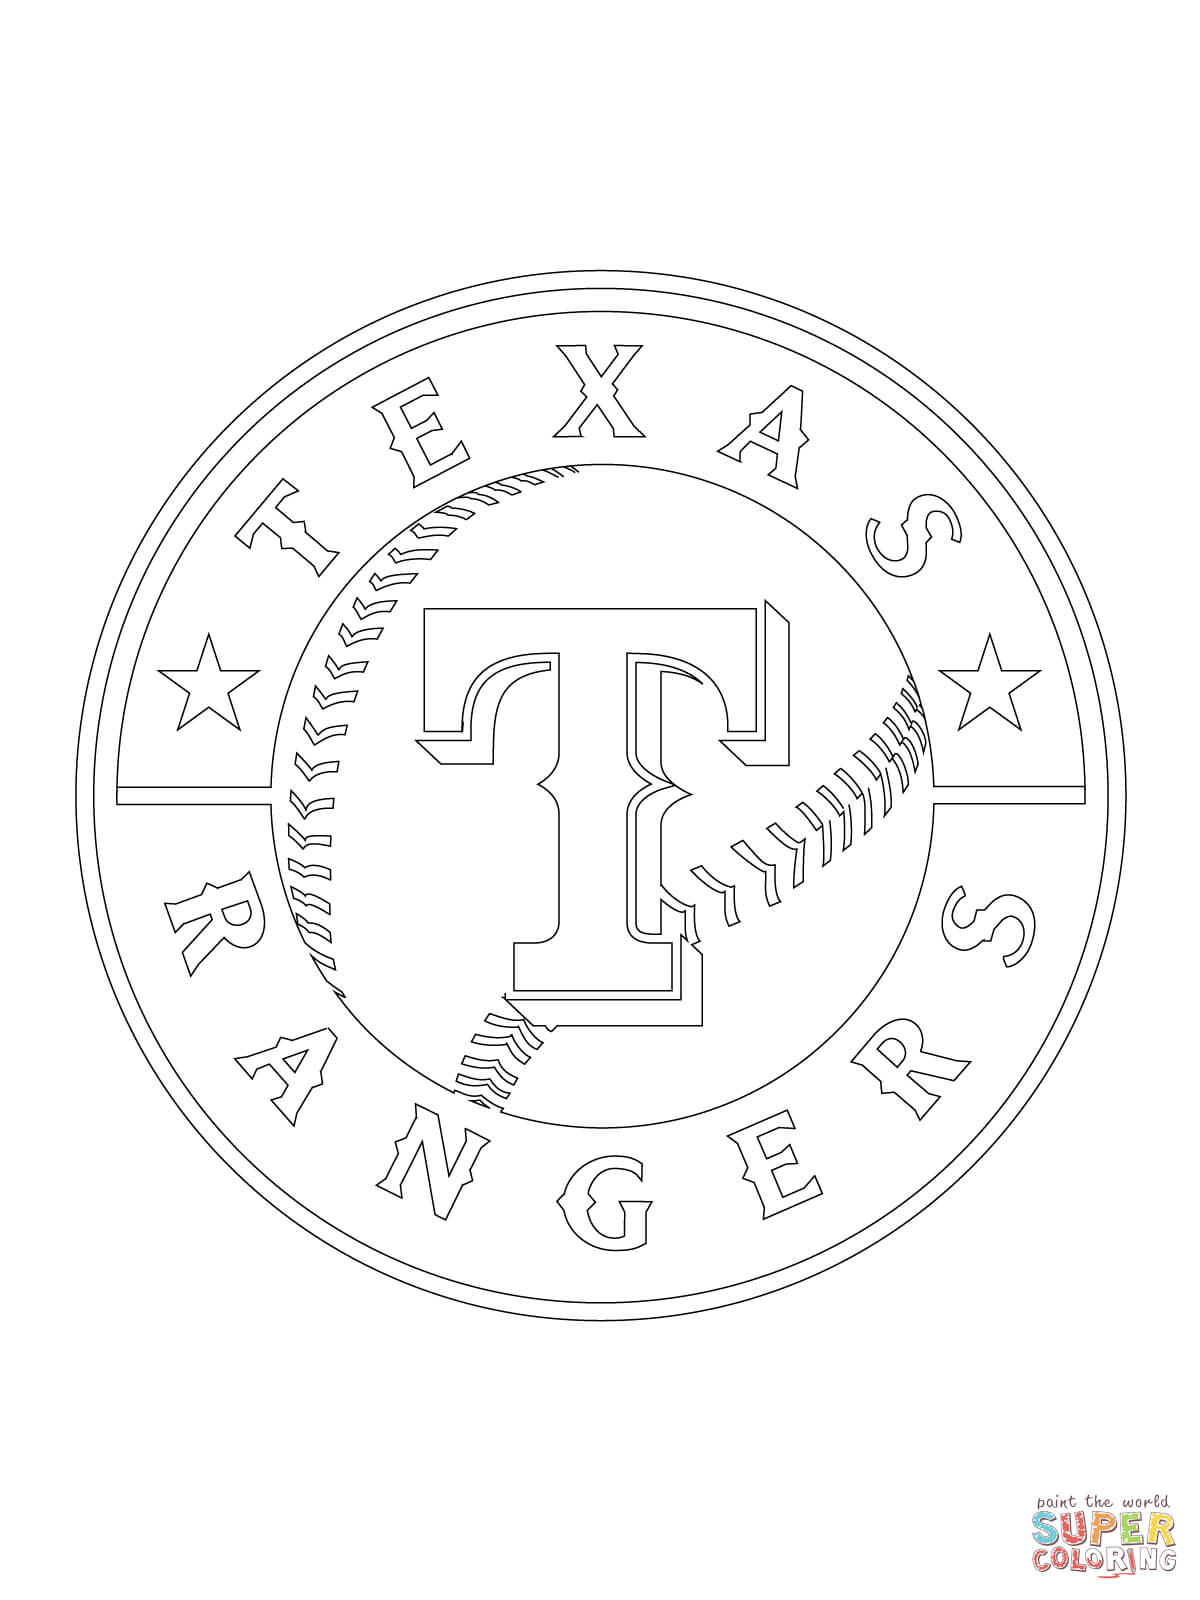 texas state seal coloring page texas symbols facts funsheet pack of 30 seal state texas coloring page